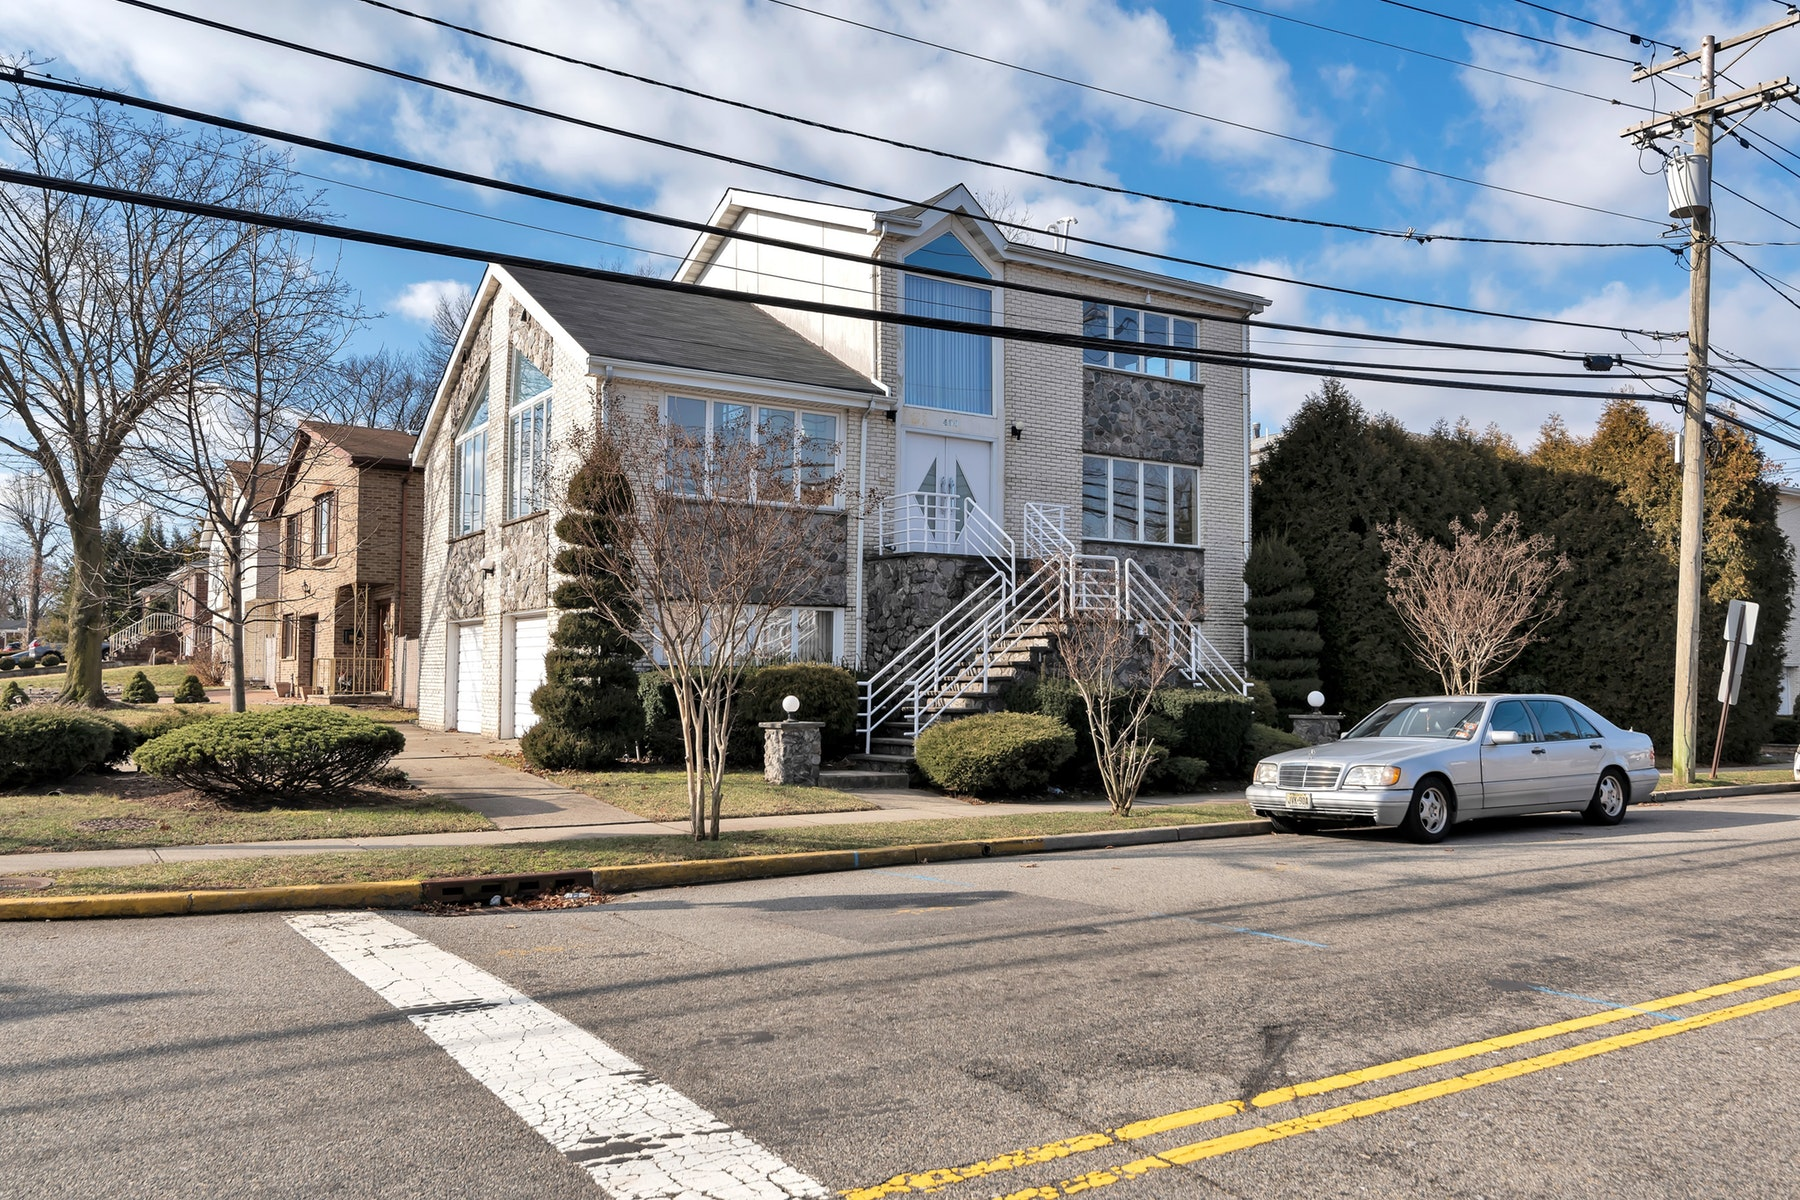 Single Family Home for Sale at 430 Brinkerhoff Avenue Fort Lee, New Jersey 07024 United States